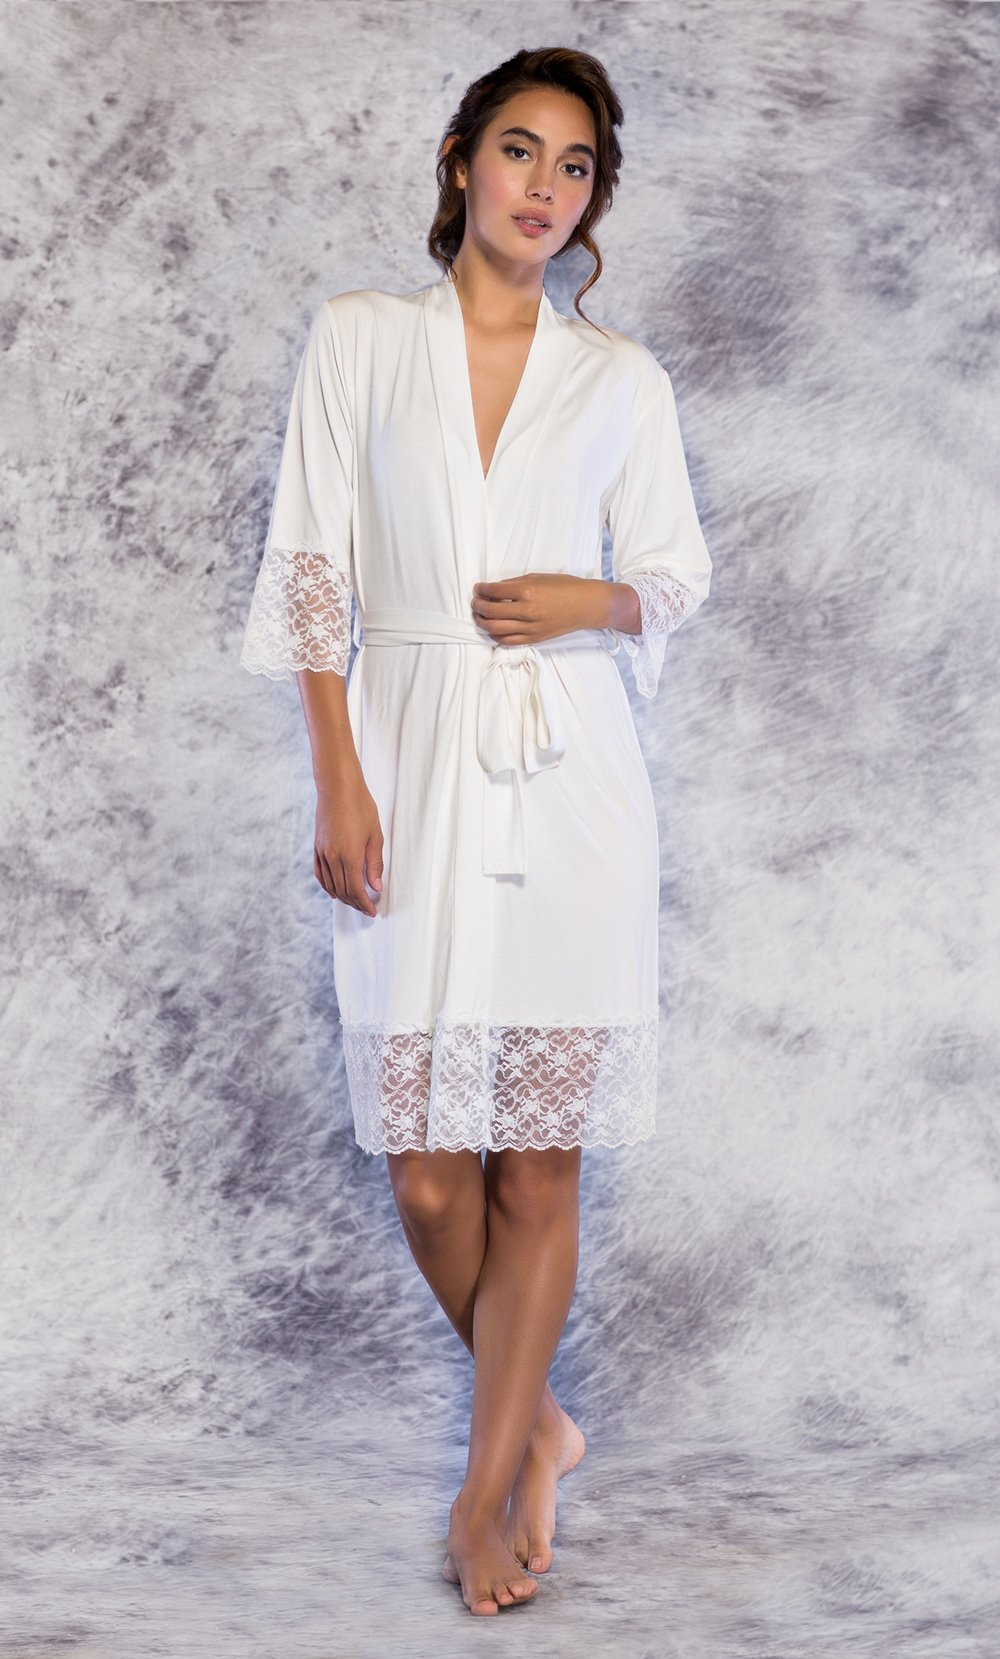 bd046dc091 Women s    Women s Sleepwear    Lace Robe    100% Bamboo Lace Trim Ivory Women s  Kimono Robe - Wholesale bathrobes